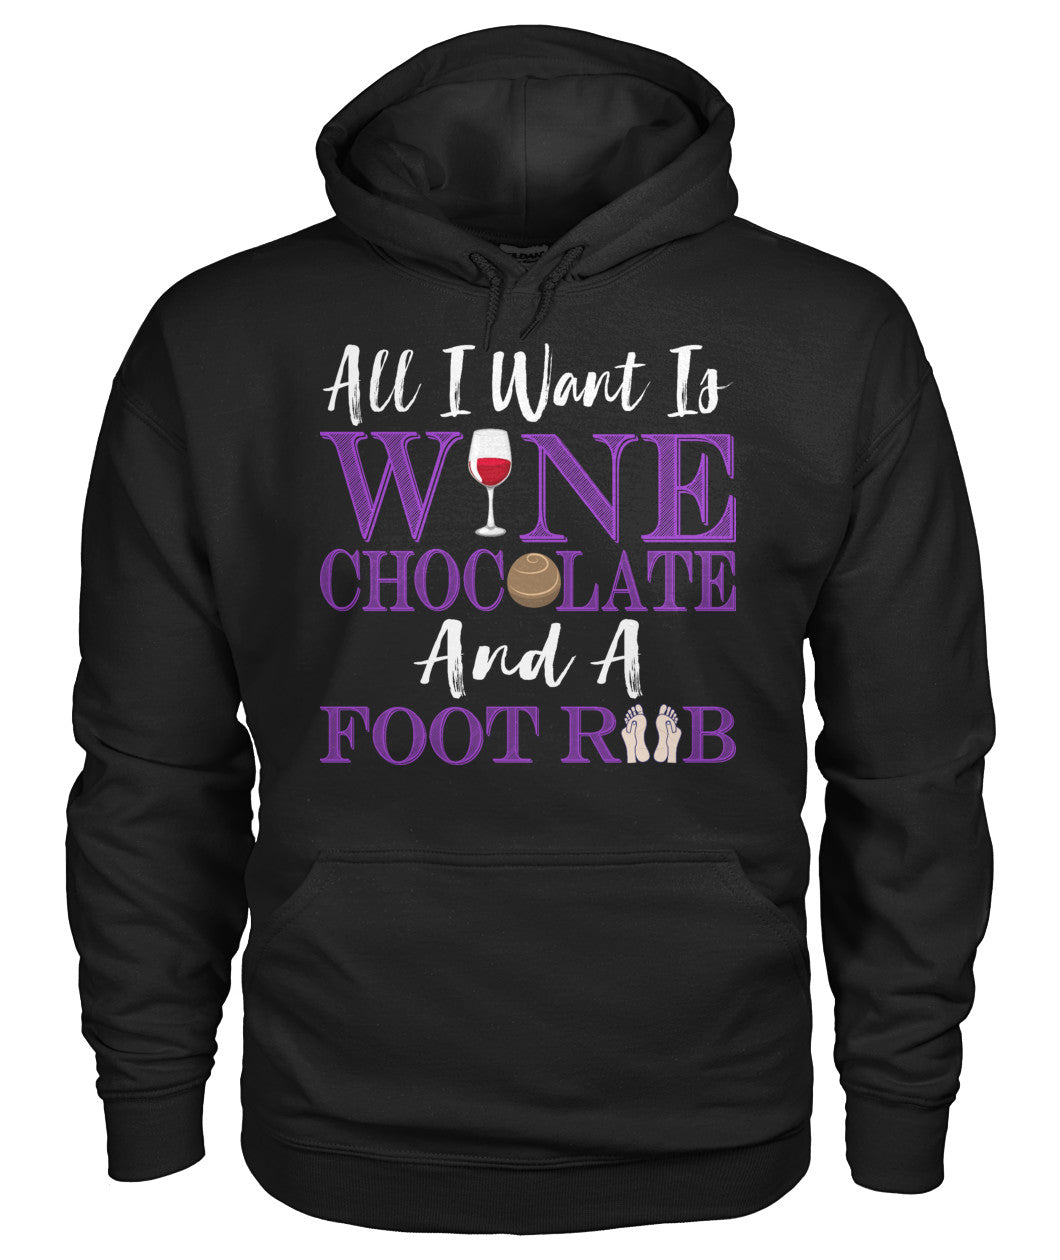 Wine, Chocolate, and a Foot Rub - Women's Custom Lifestyle T-Shirt